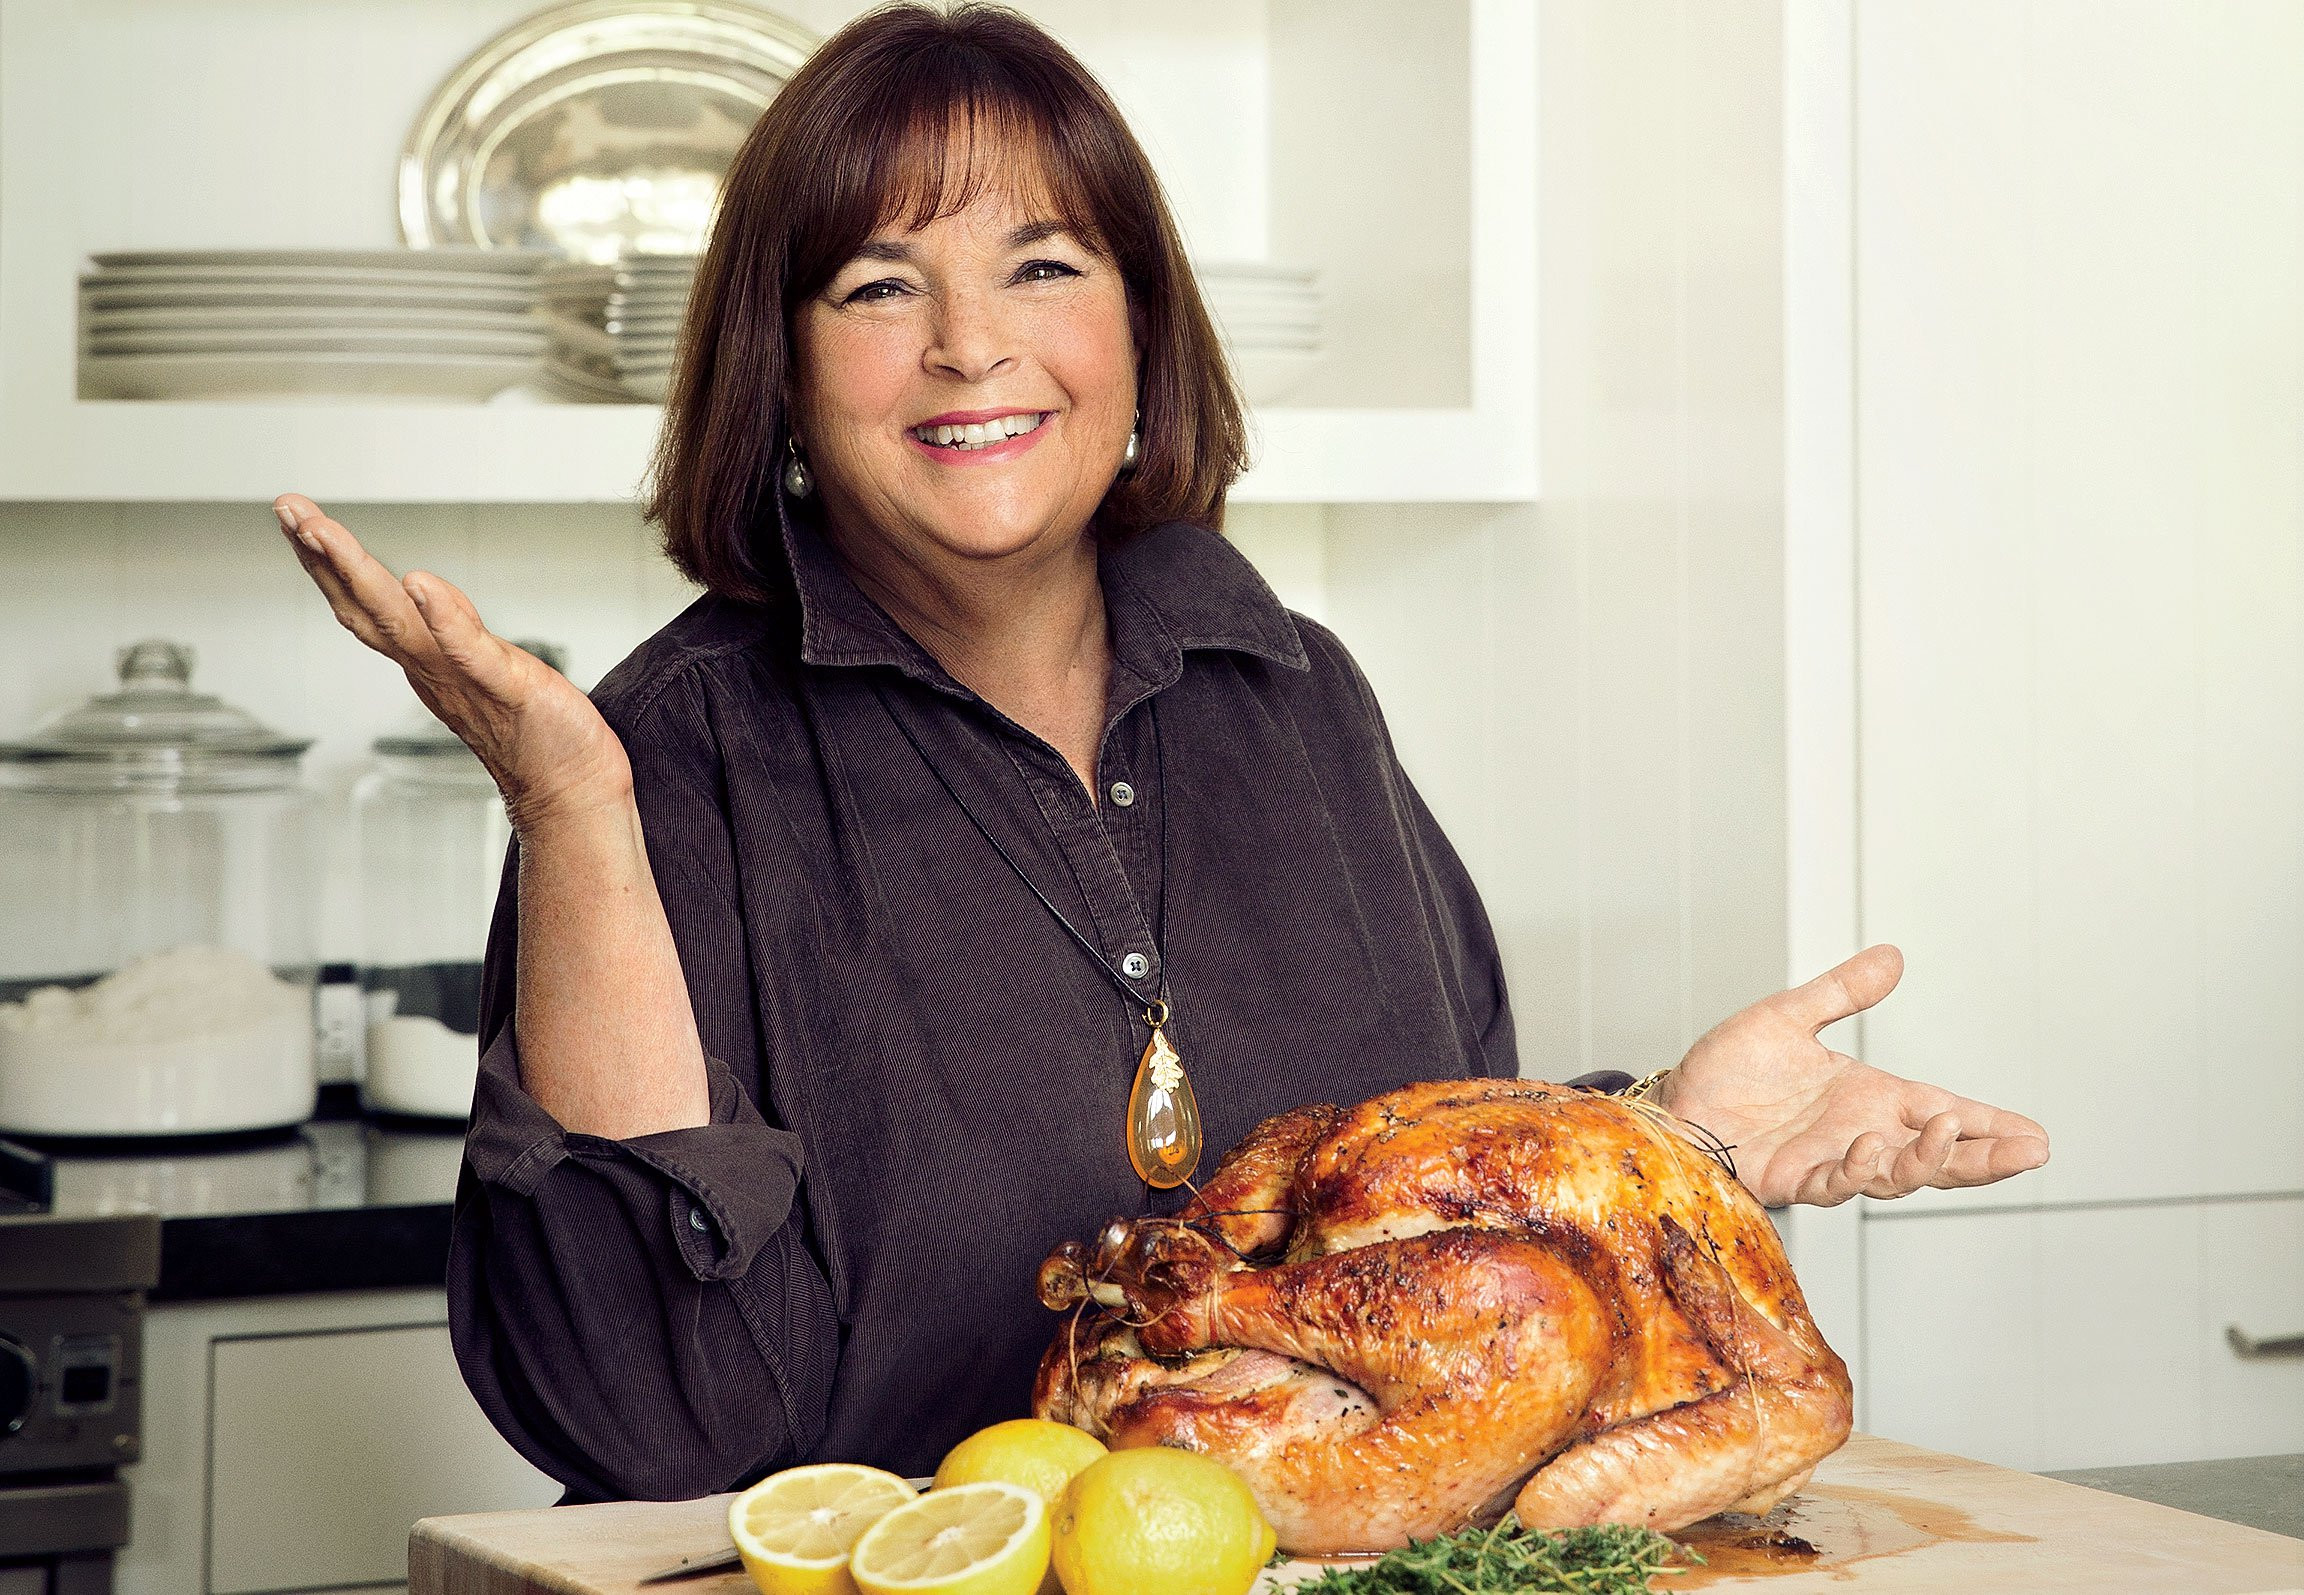 Barefoot Contessa Thanksgiving Turkey  Have A Make Ahead Thanksgiving With Barefoot Contessa Ina